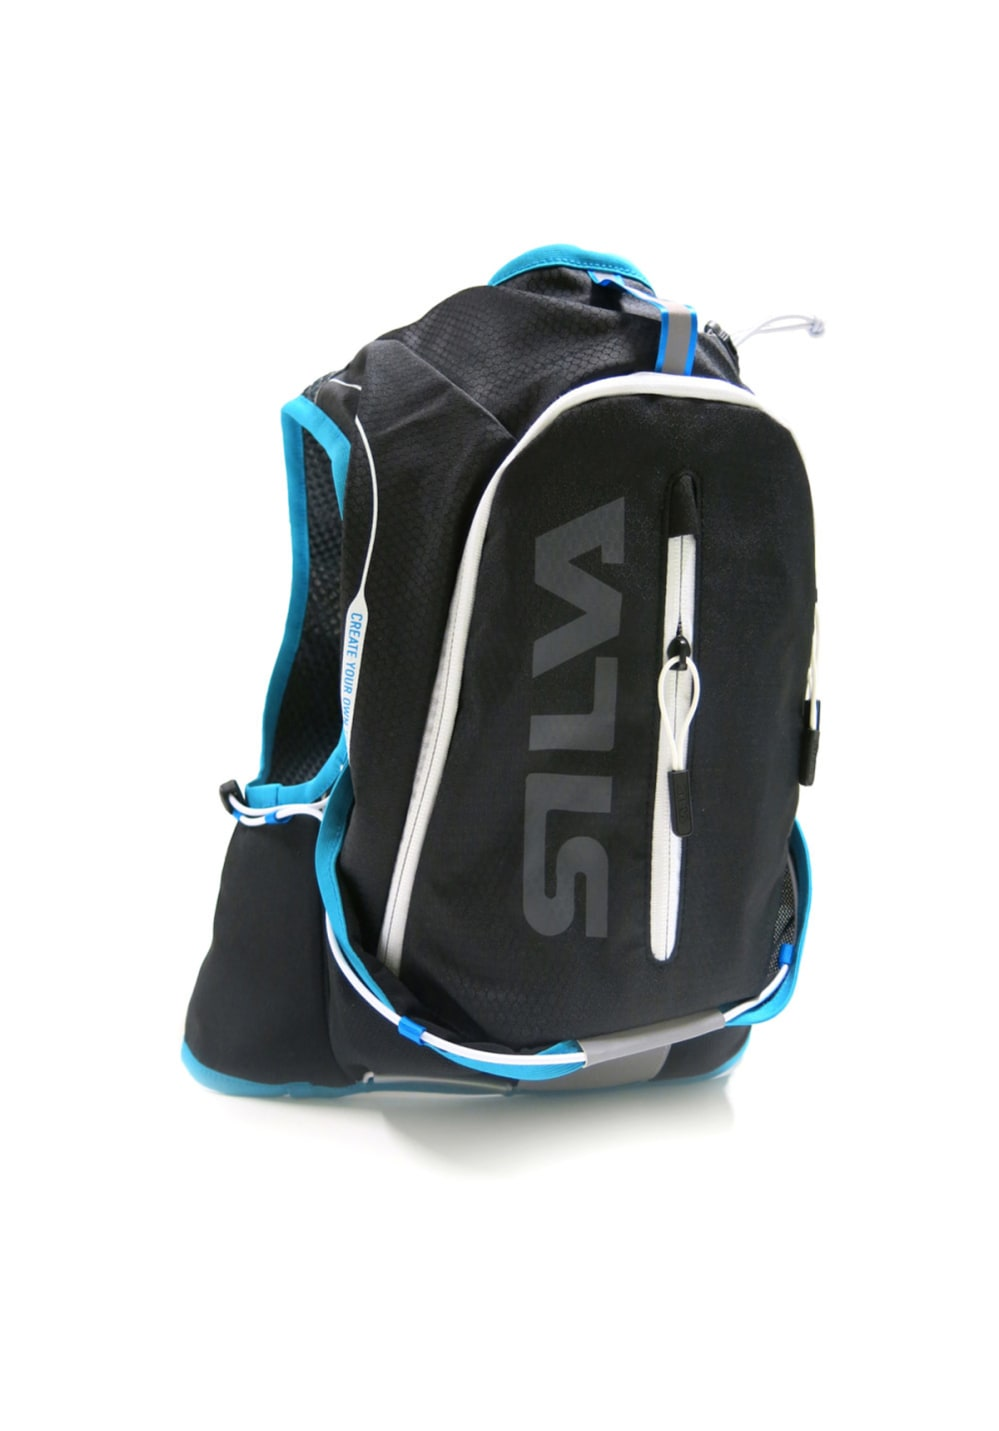 Silva Strive10 Running Backpack Rucksäcke - Schwarz, Gr. XS/S